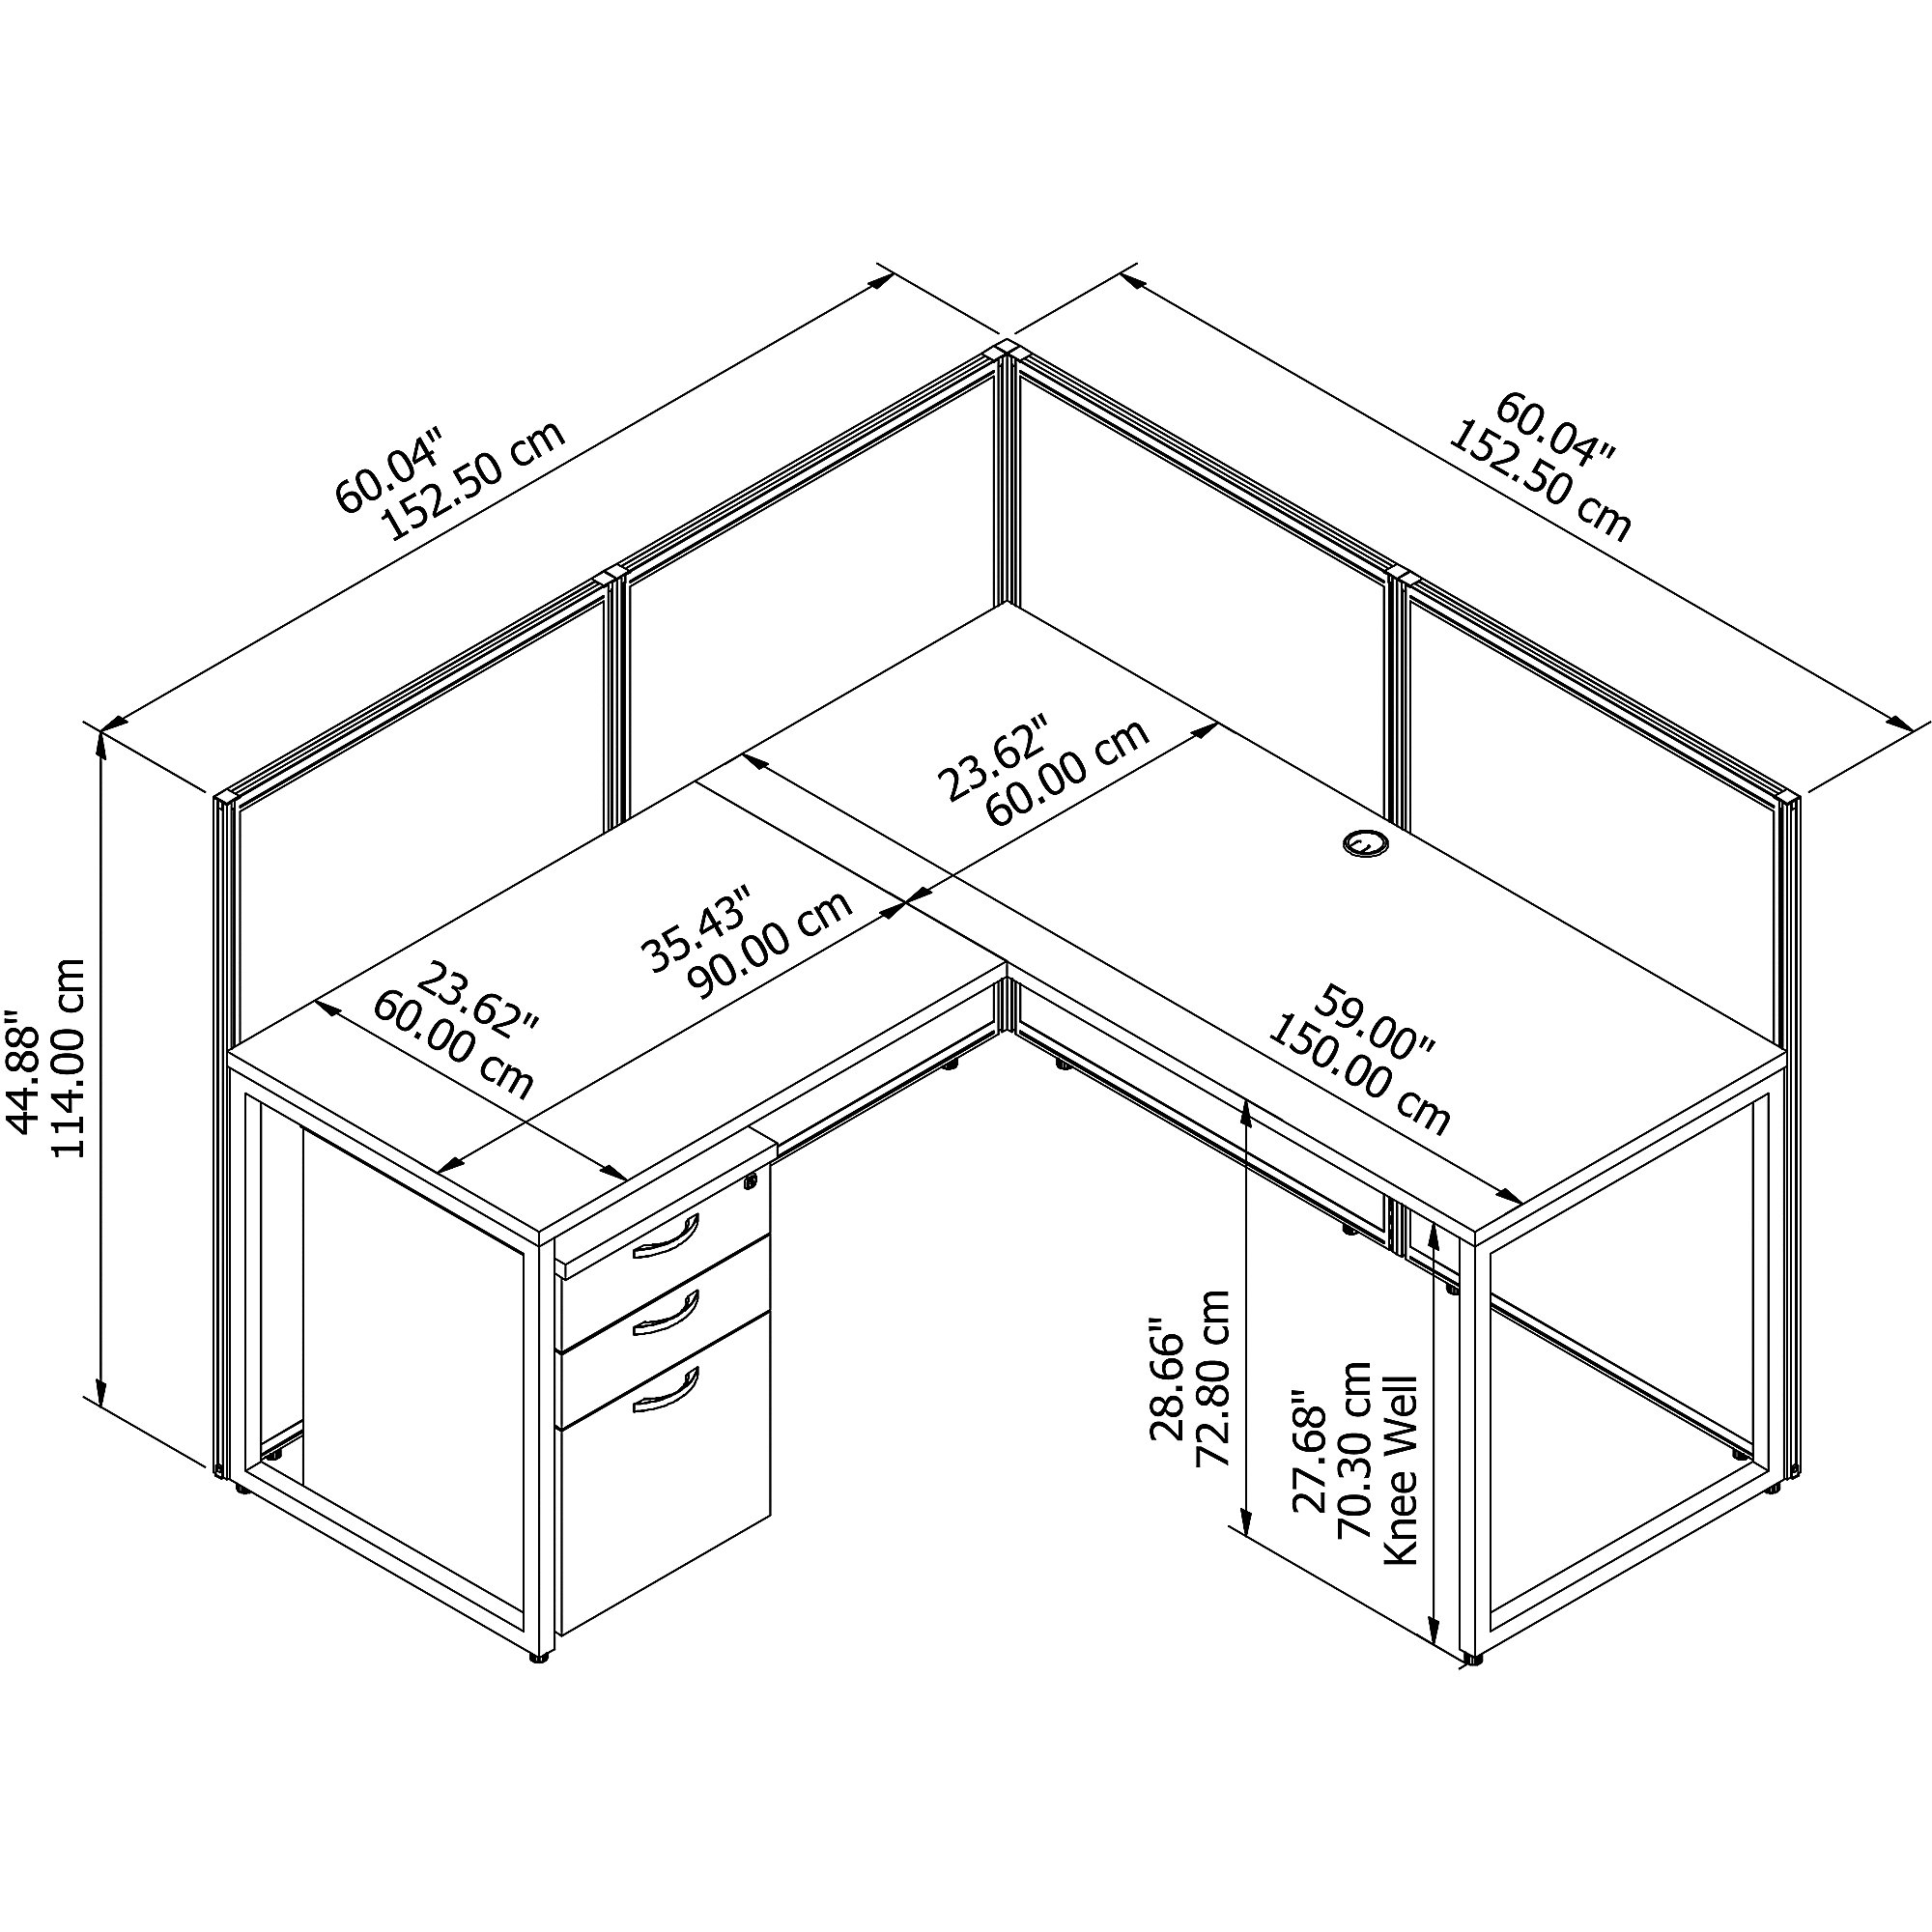 eod360swh cubicle dimensions